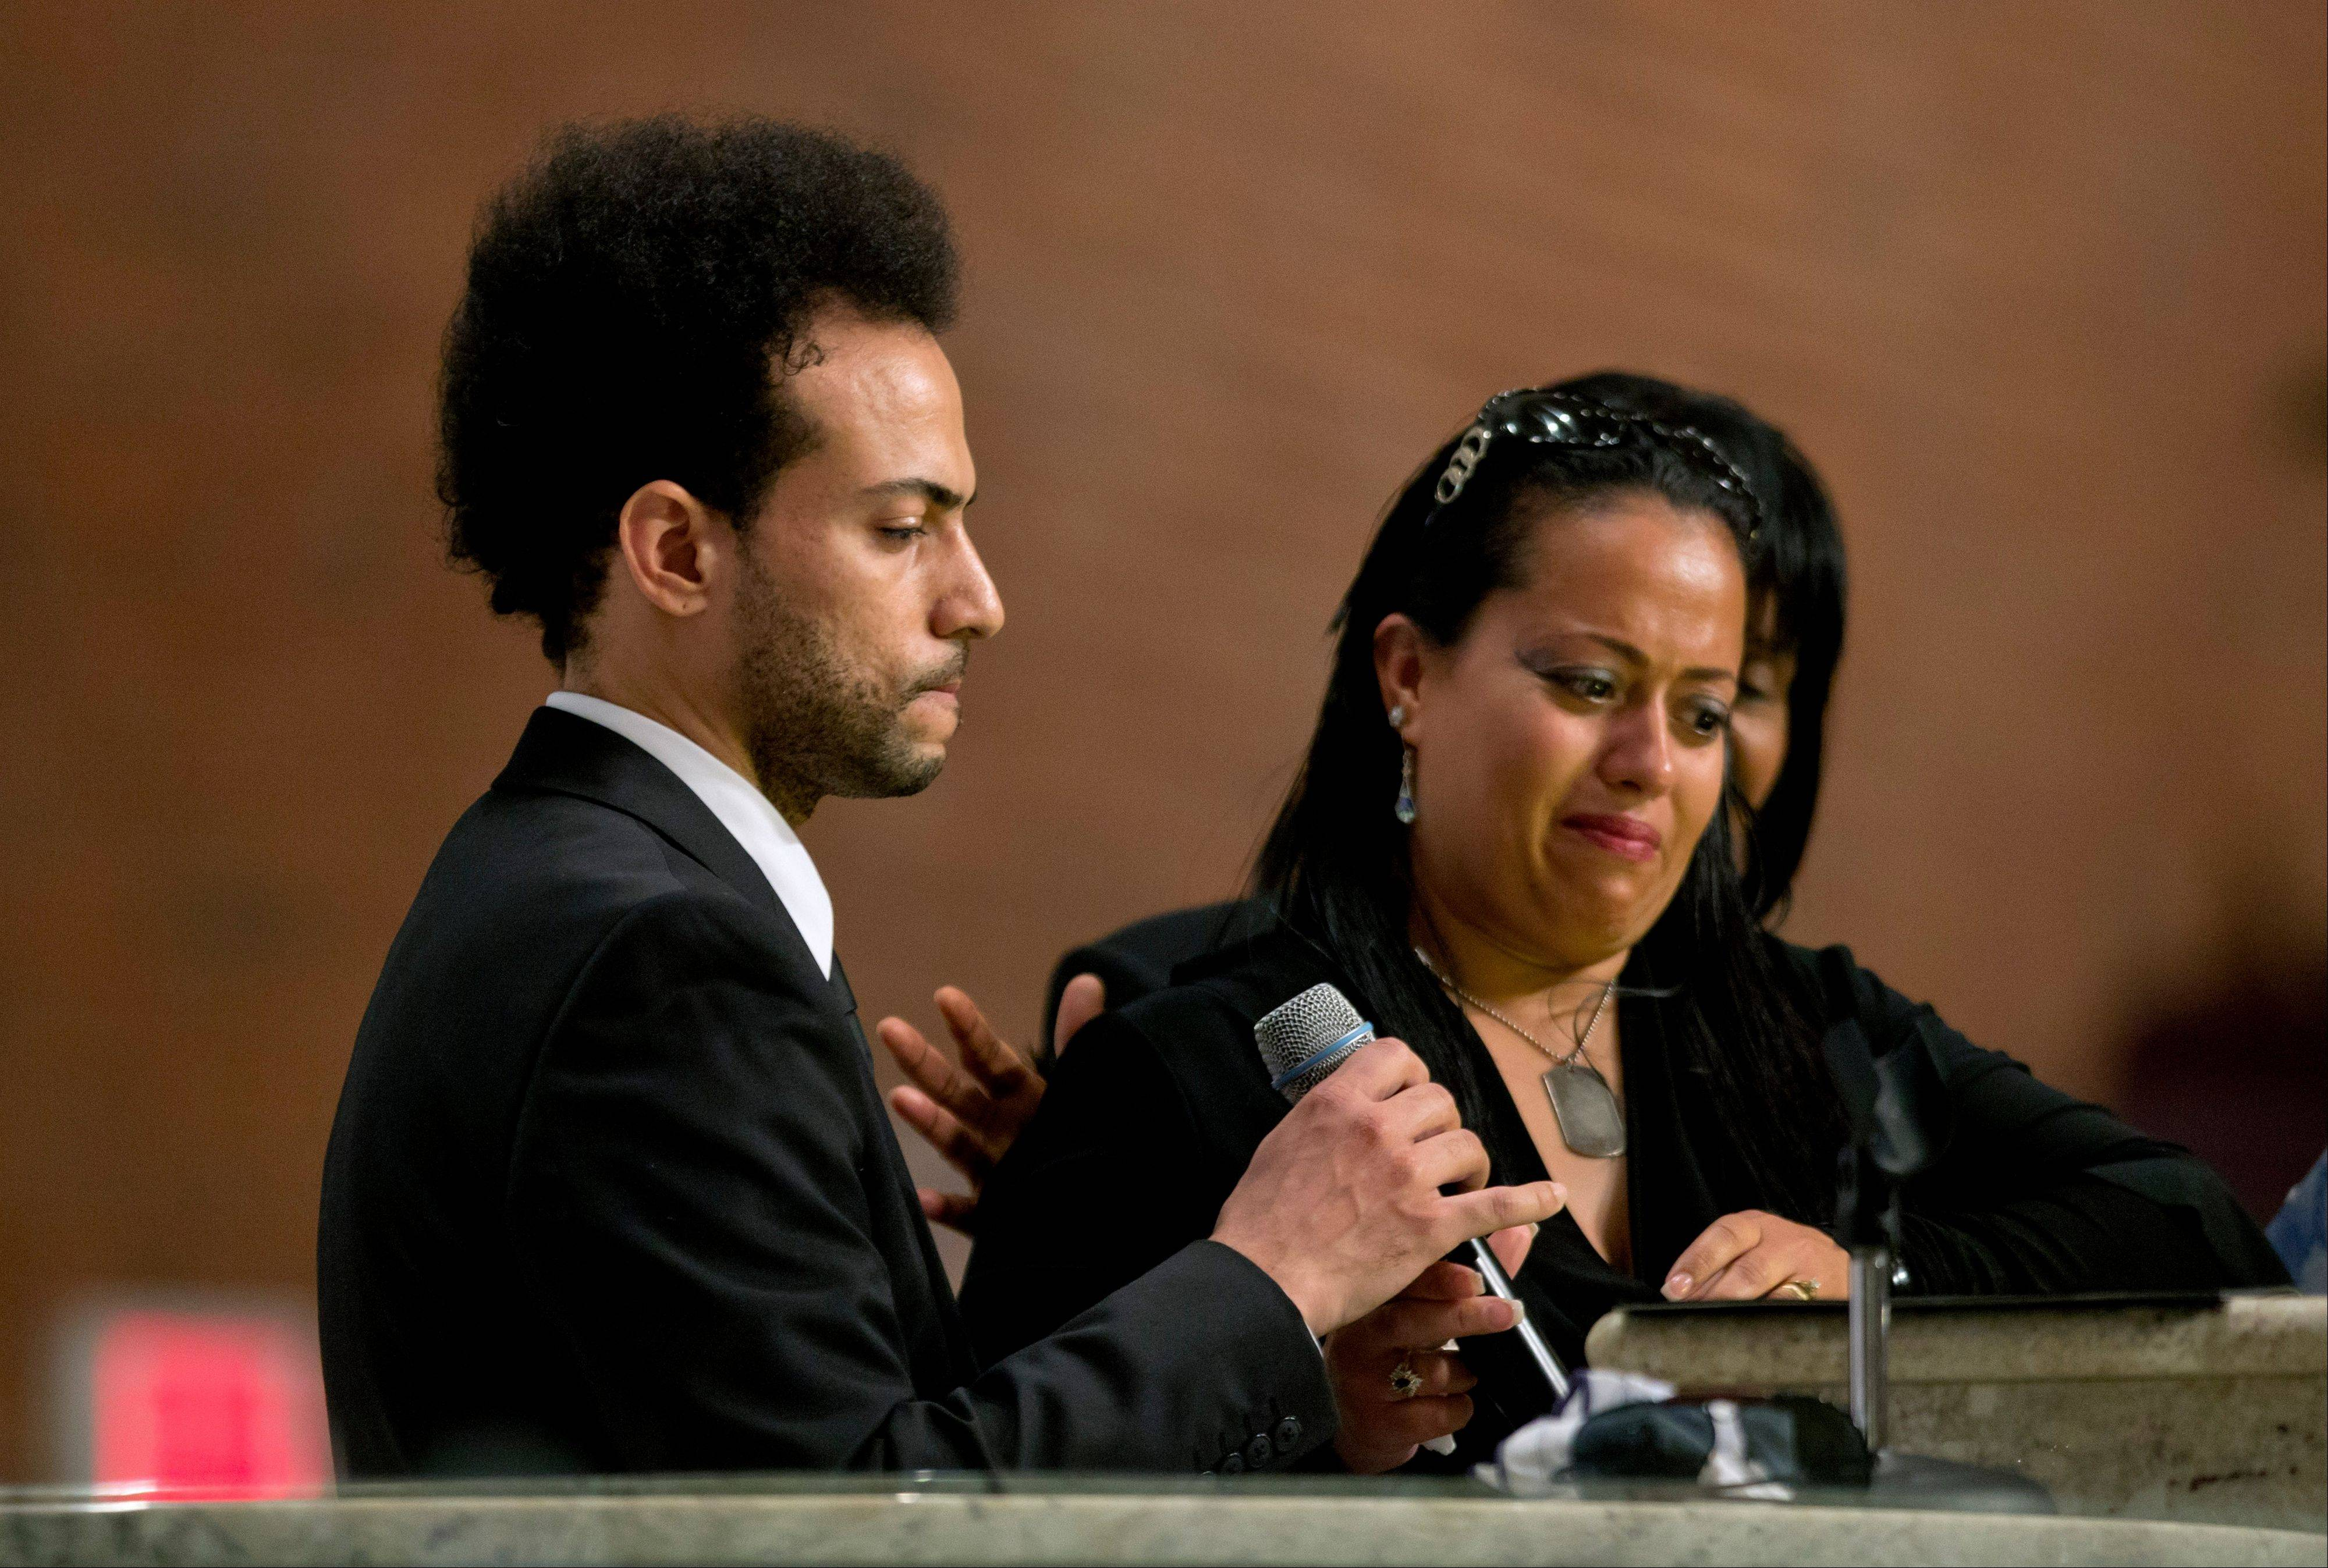 Chris Smith, left, of the rap duo Kris Kross, speaks at the funeral service of fellow band member Chris Kelly, as Smith�s sister, Jennifer Smith, right, listens, Thursday in Atlanta. The 34-year-old Kelly was found dead May 1 of a suspected drug overdose.